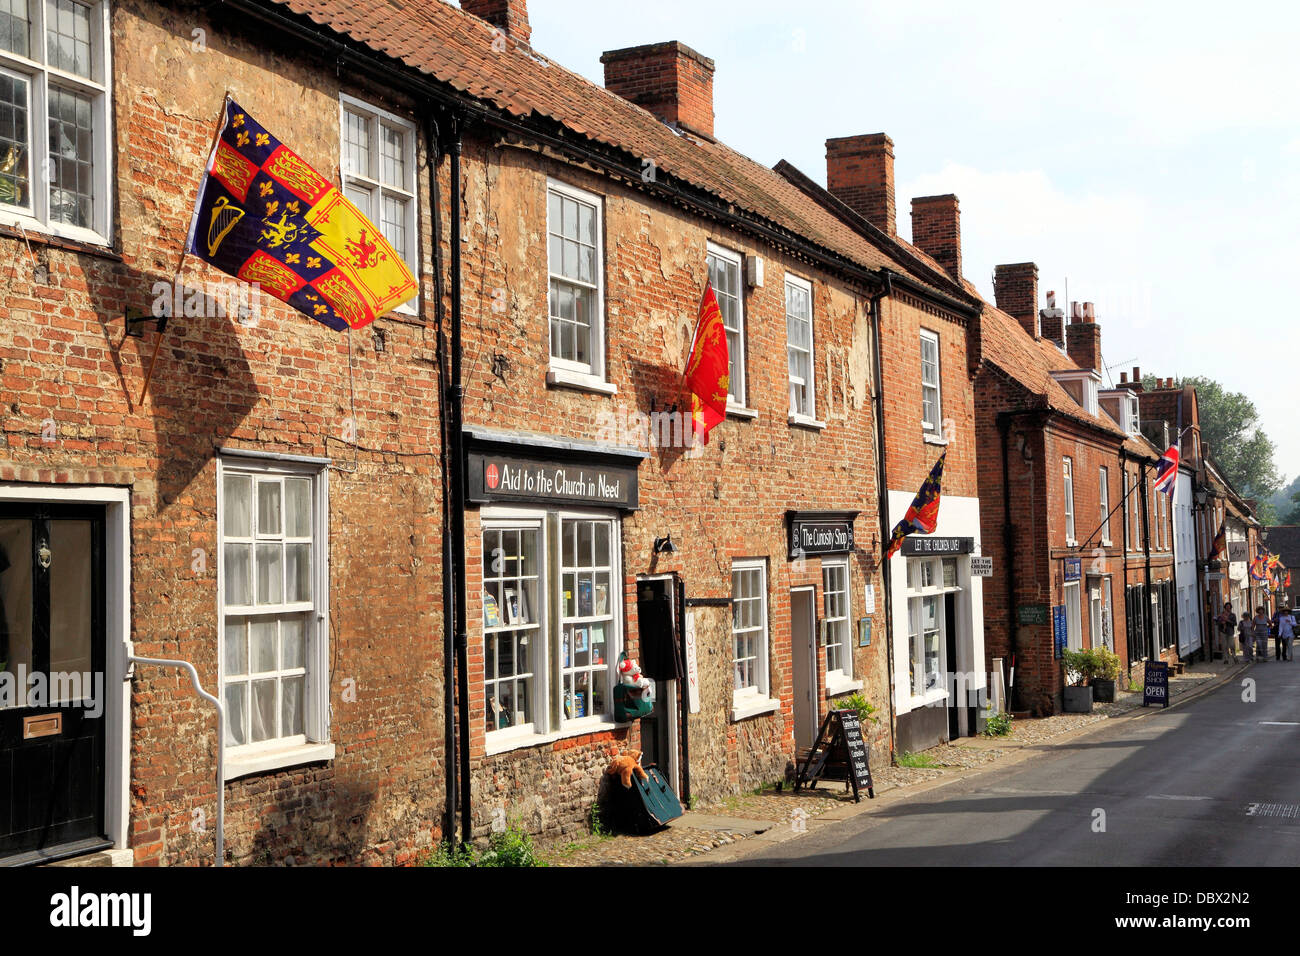 Walsingham, Norfolk, High Street shops, England, UK, English town towns - Stock Image